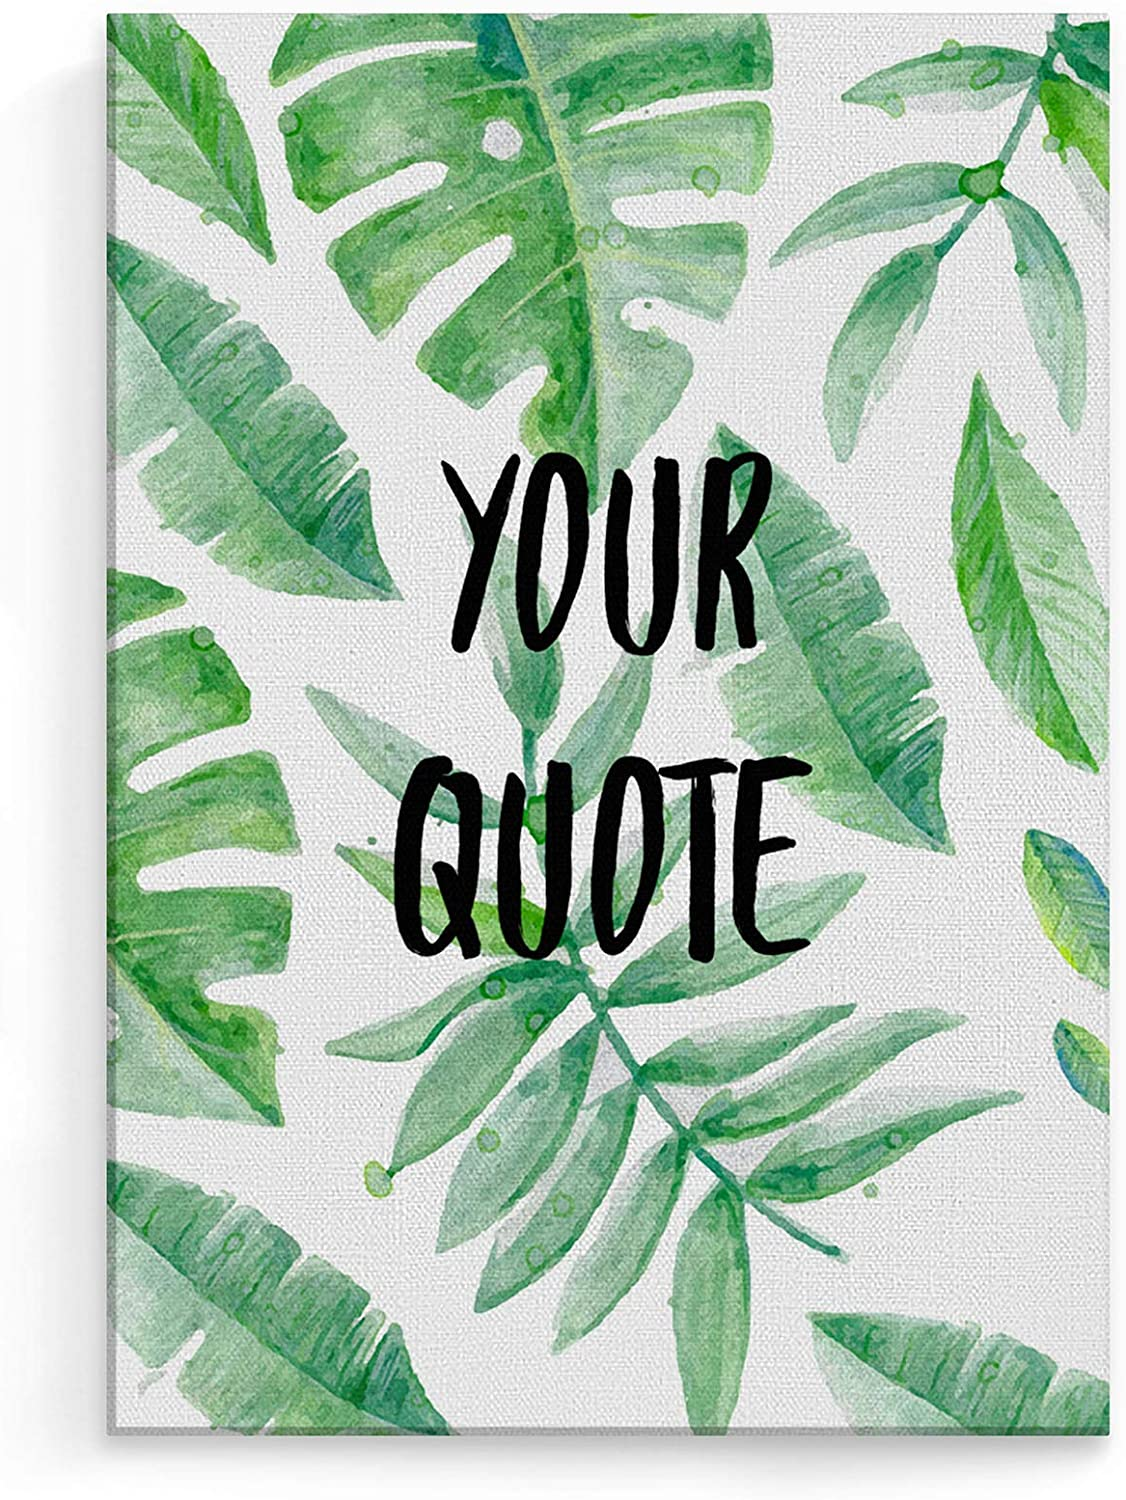 Personalized Customizable Custom Text Tumblr Motivation Or Inspiration Quote Tropical Leaves Palm Leaf Large Canvas Print Stretched On A Frame For Stylish Decorations Wall Art Size 30cm X 40cm Amazon Co Uk Kitchen What's included 6 large files 300dpi in the following sizes. personalized customizable custom text